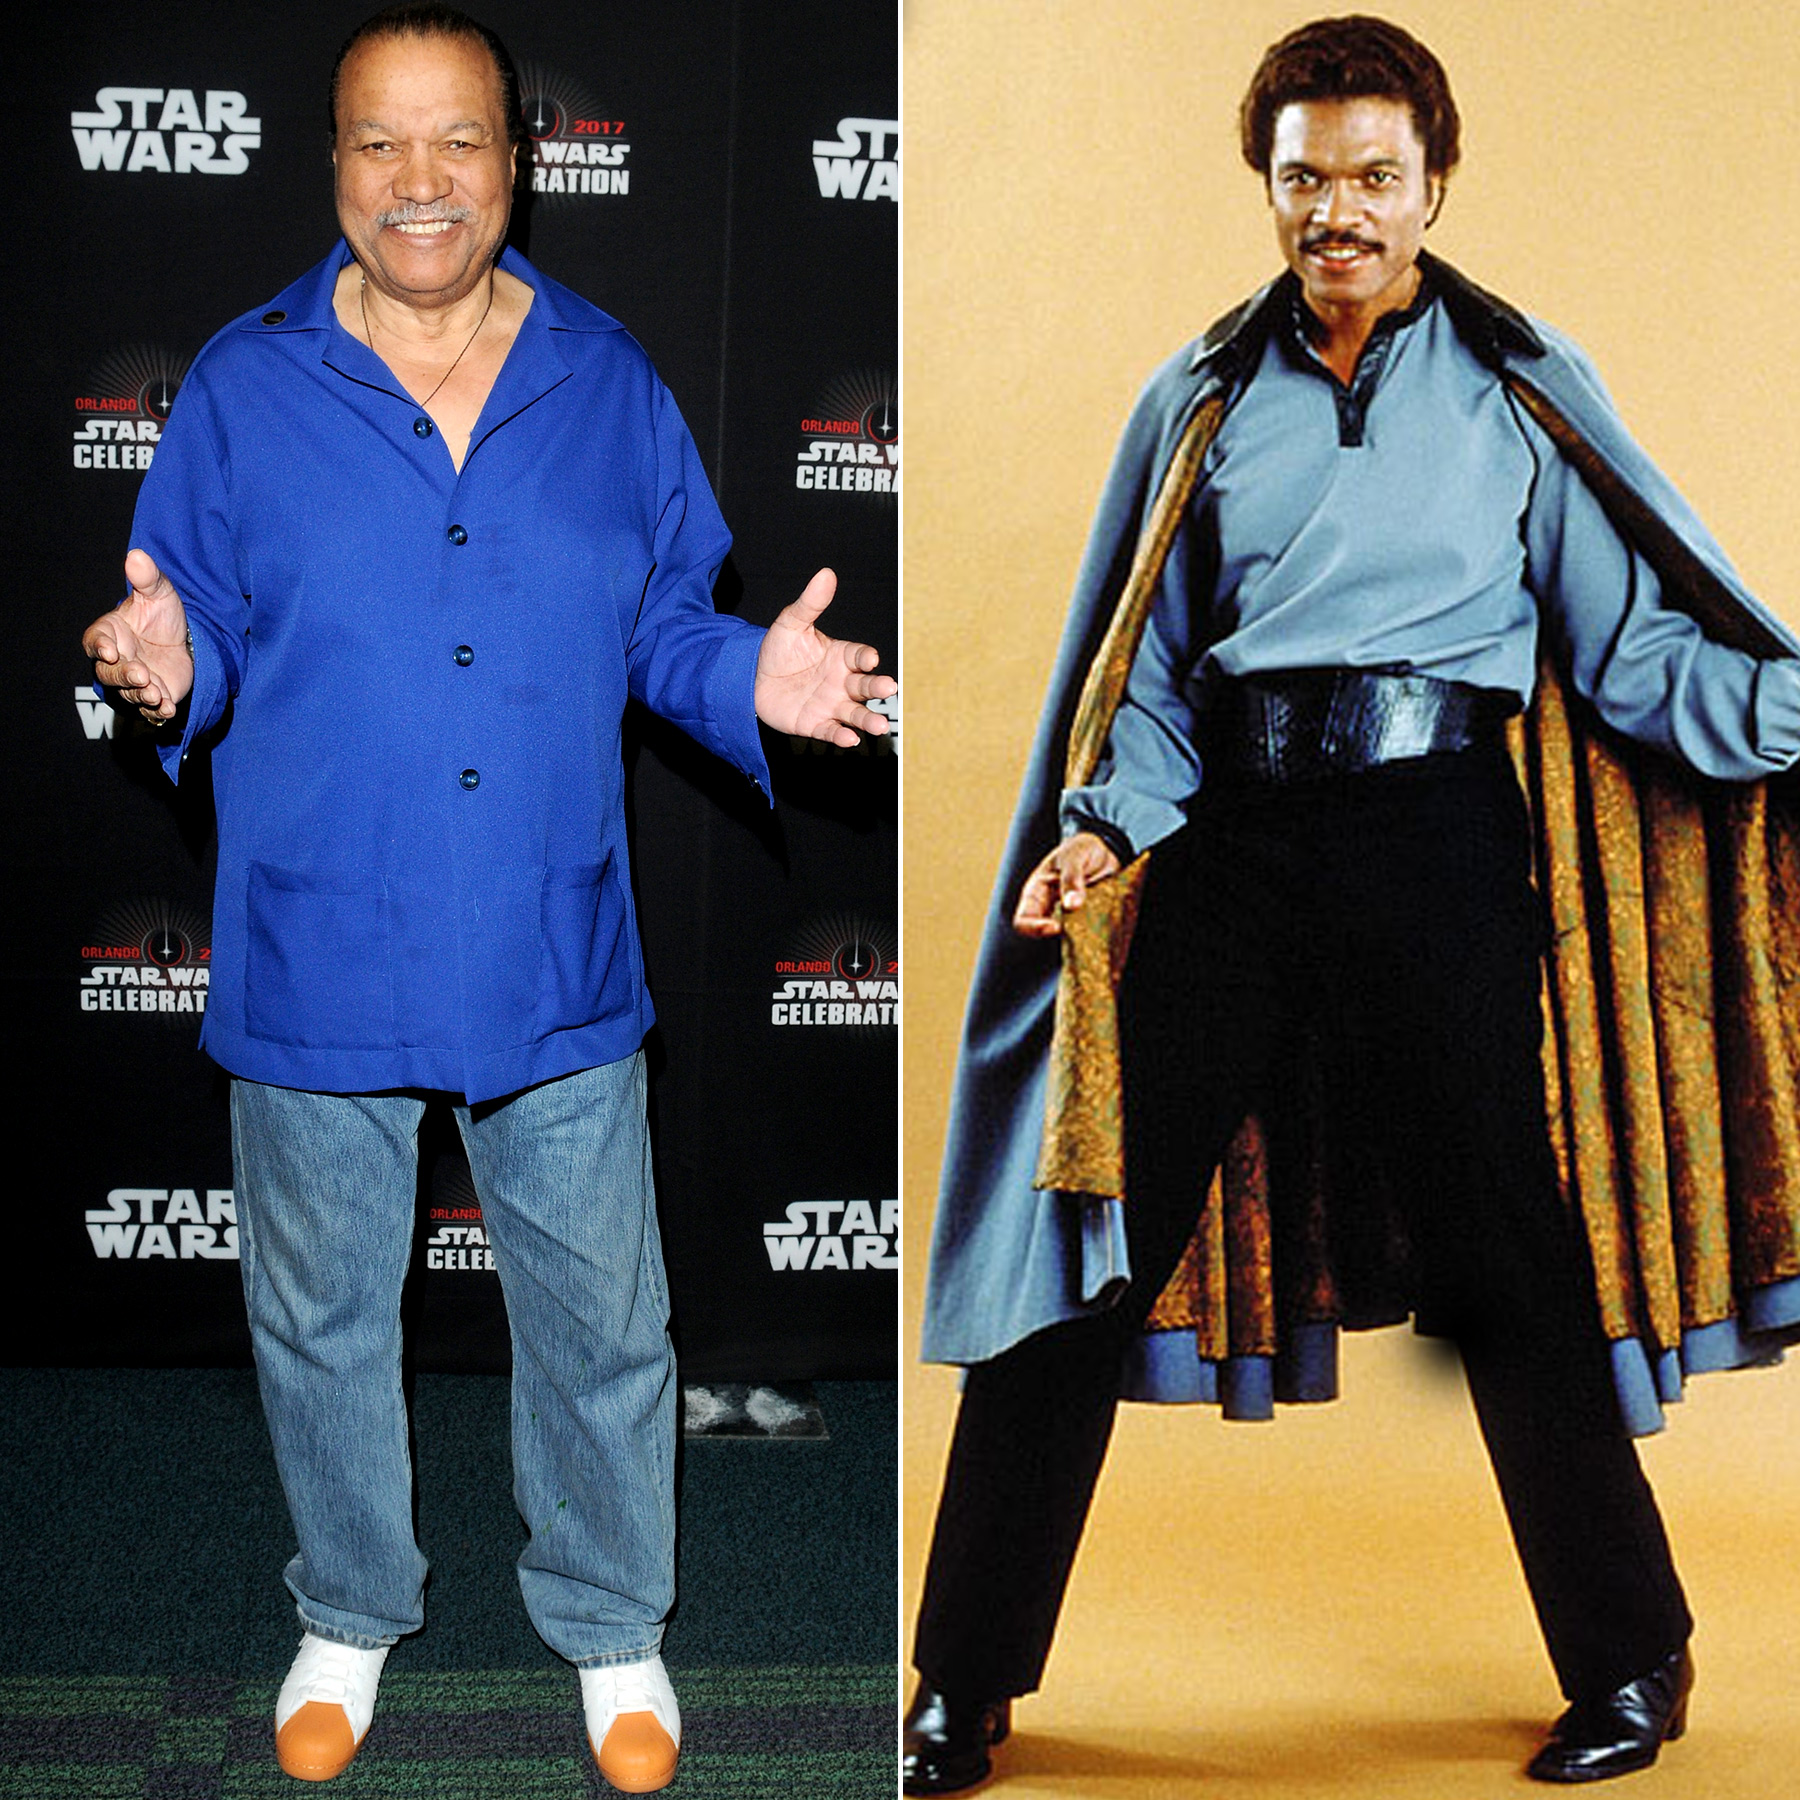 Billy Dee Williams and Lando Calrissian